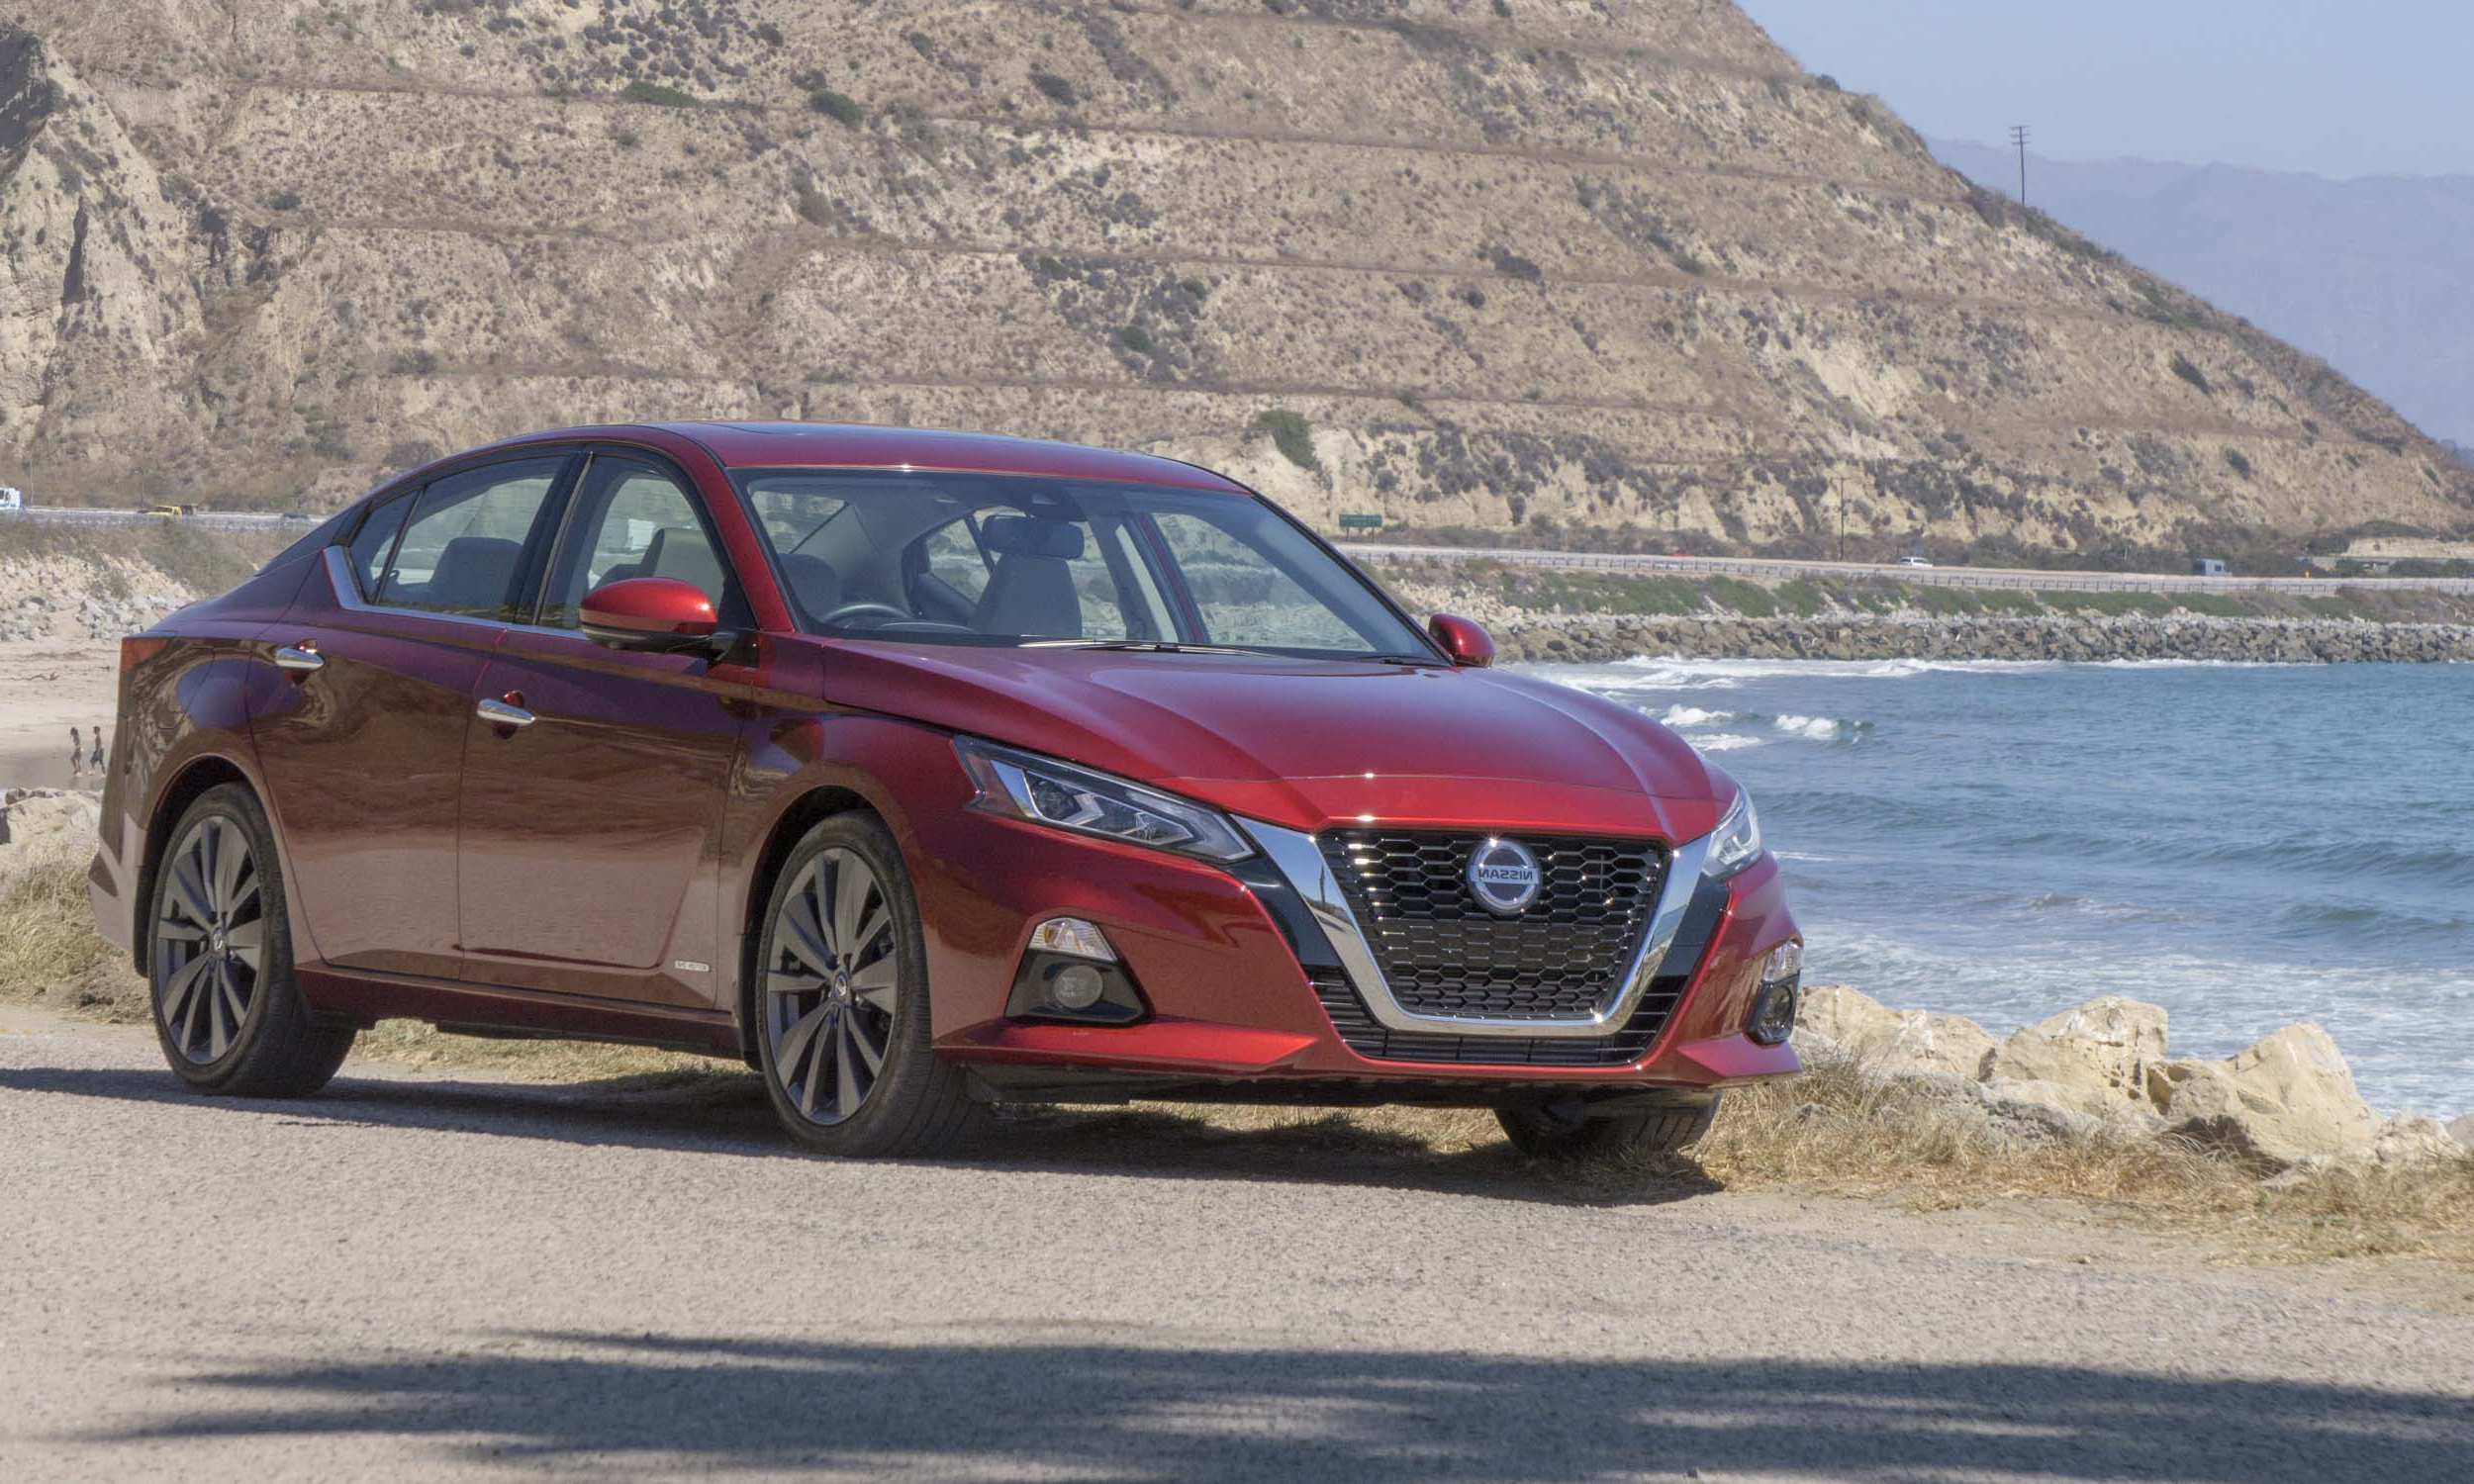 20 Great The 2019 Nissan Altima Horsepower First Drive Redesign by The 2019 Nissan Altima Horsepower First Drive